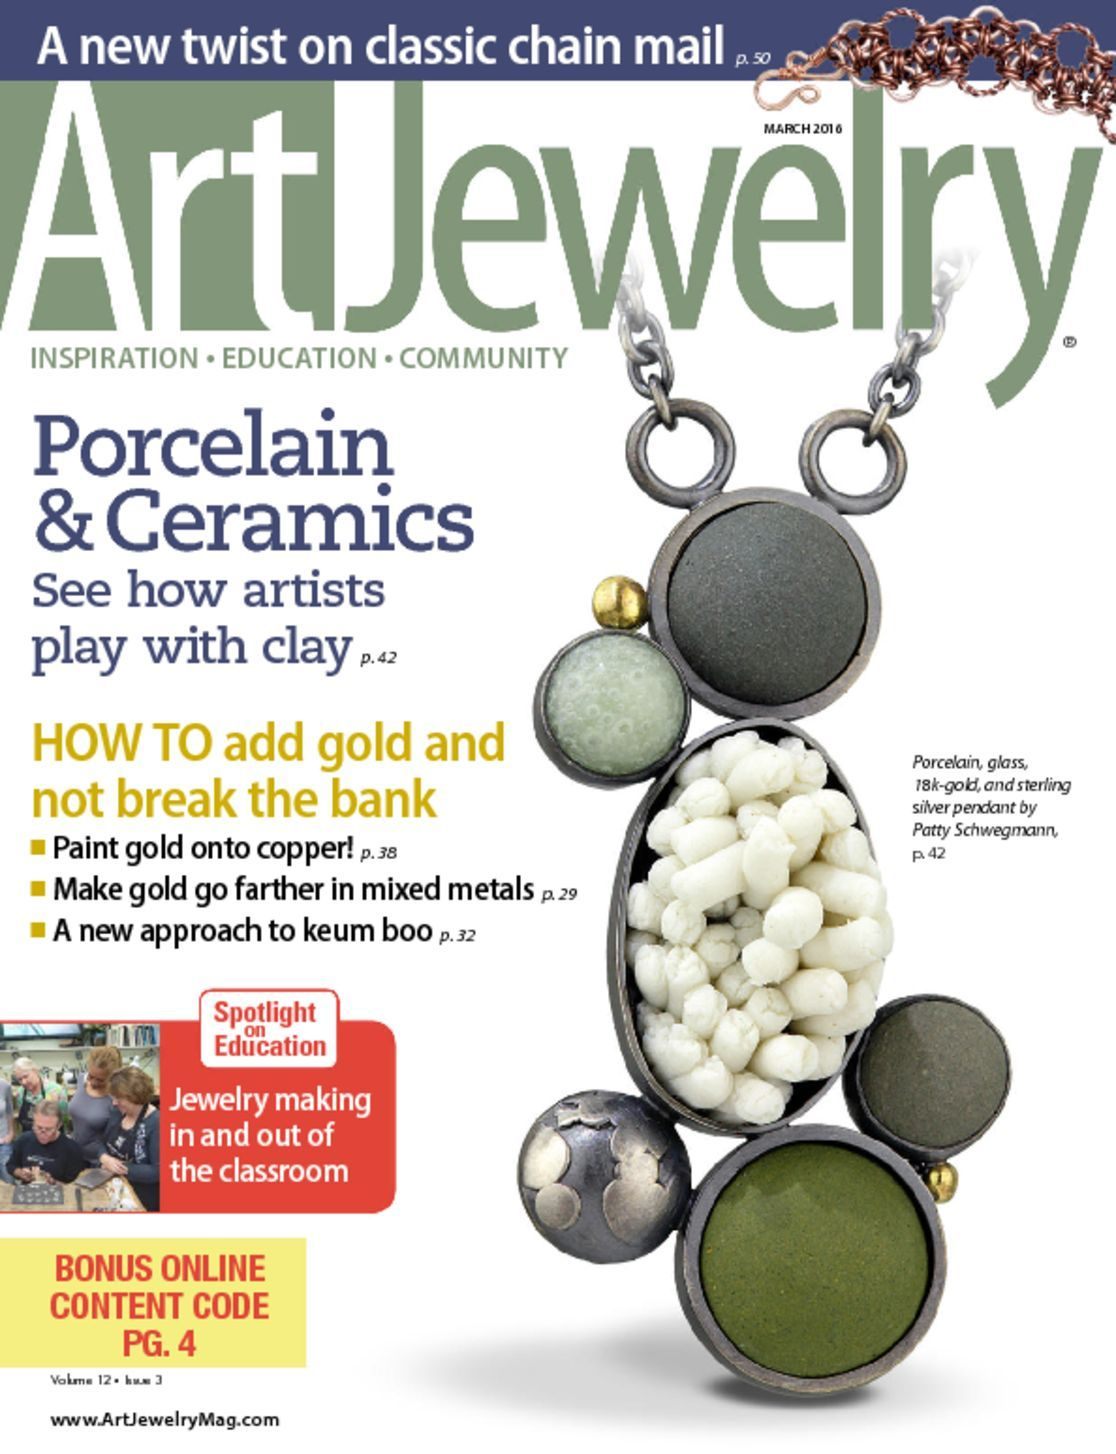 Jewelry Artist is a beautiful magazine that focuses on metallic jewelry art and design. This magazine subscription draws its material from the best jewelry makers to inspire you. Each issue combines gemology, mineralogy and history with fine carving and jewelry making to create a .